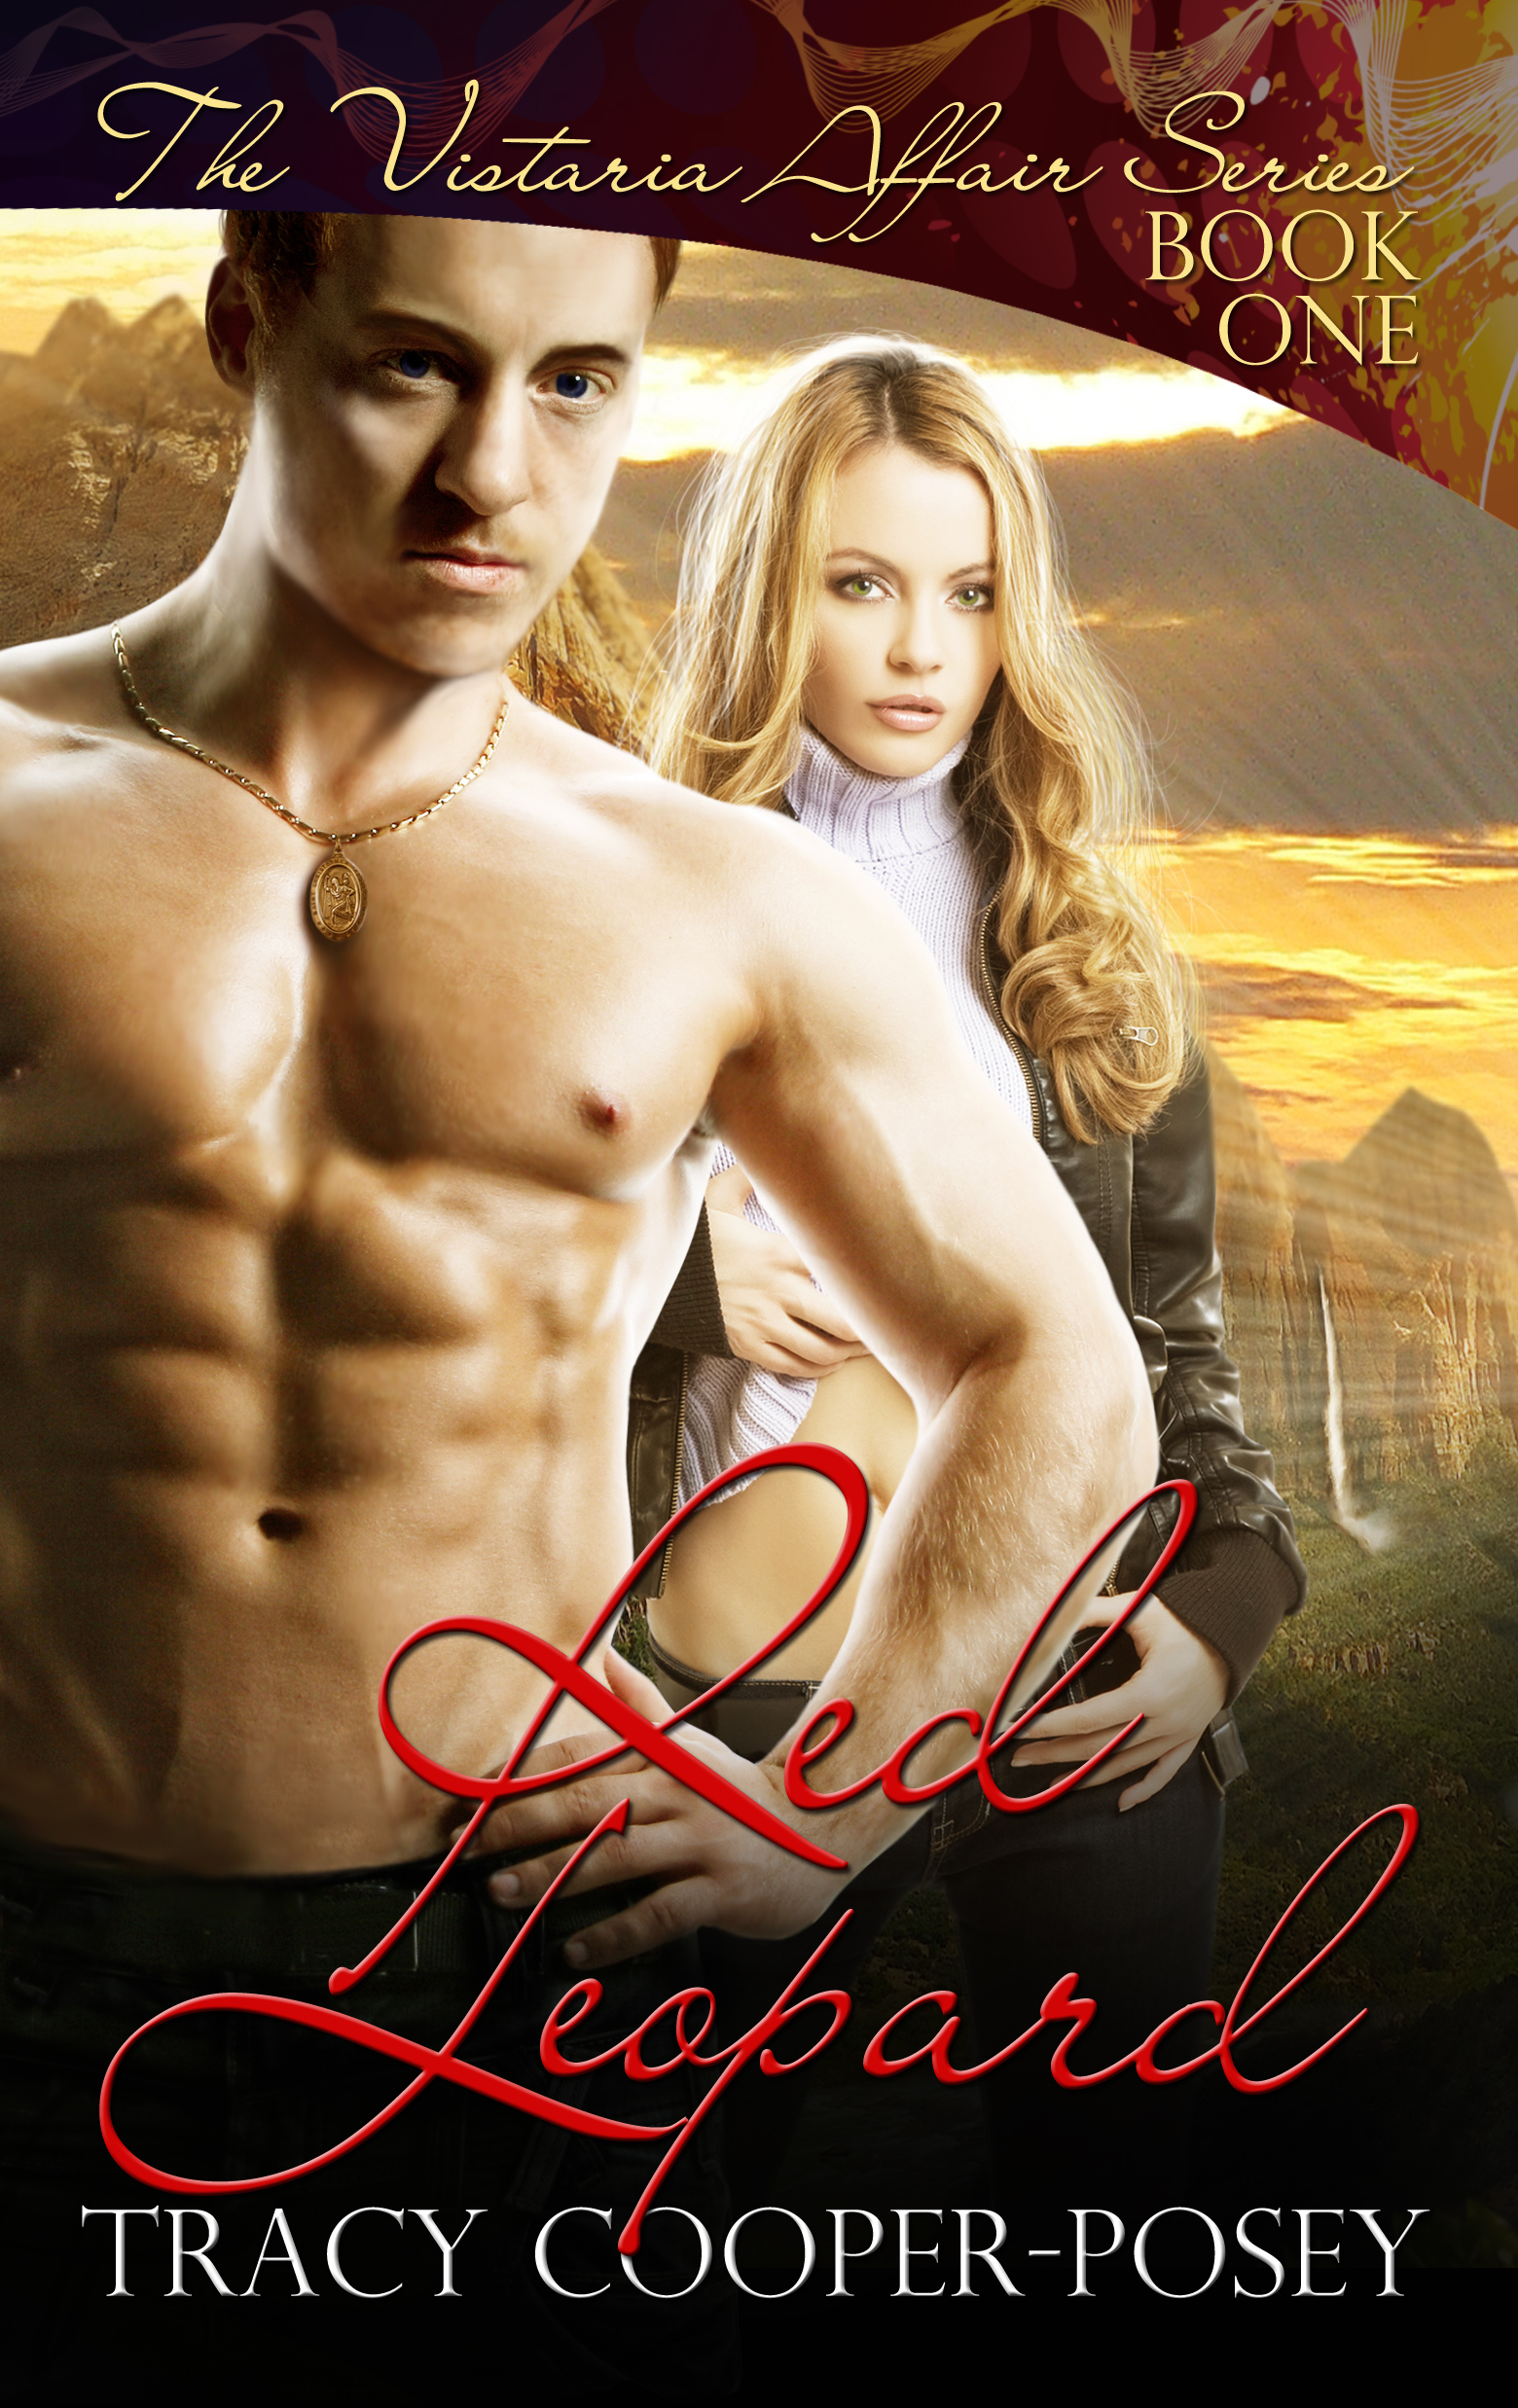 Free personalized erotic fiction